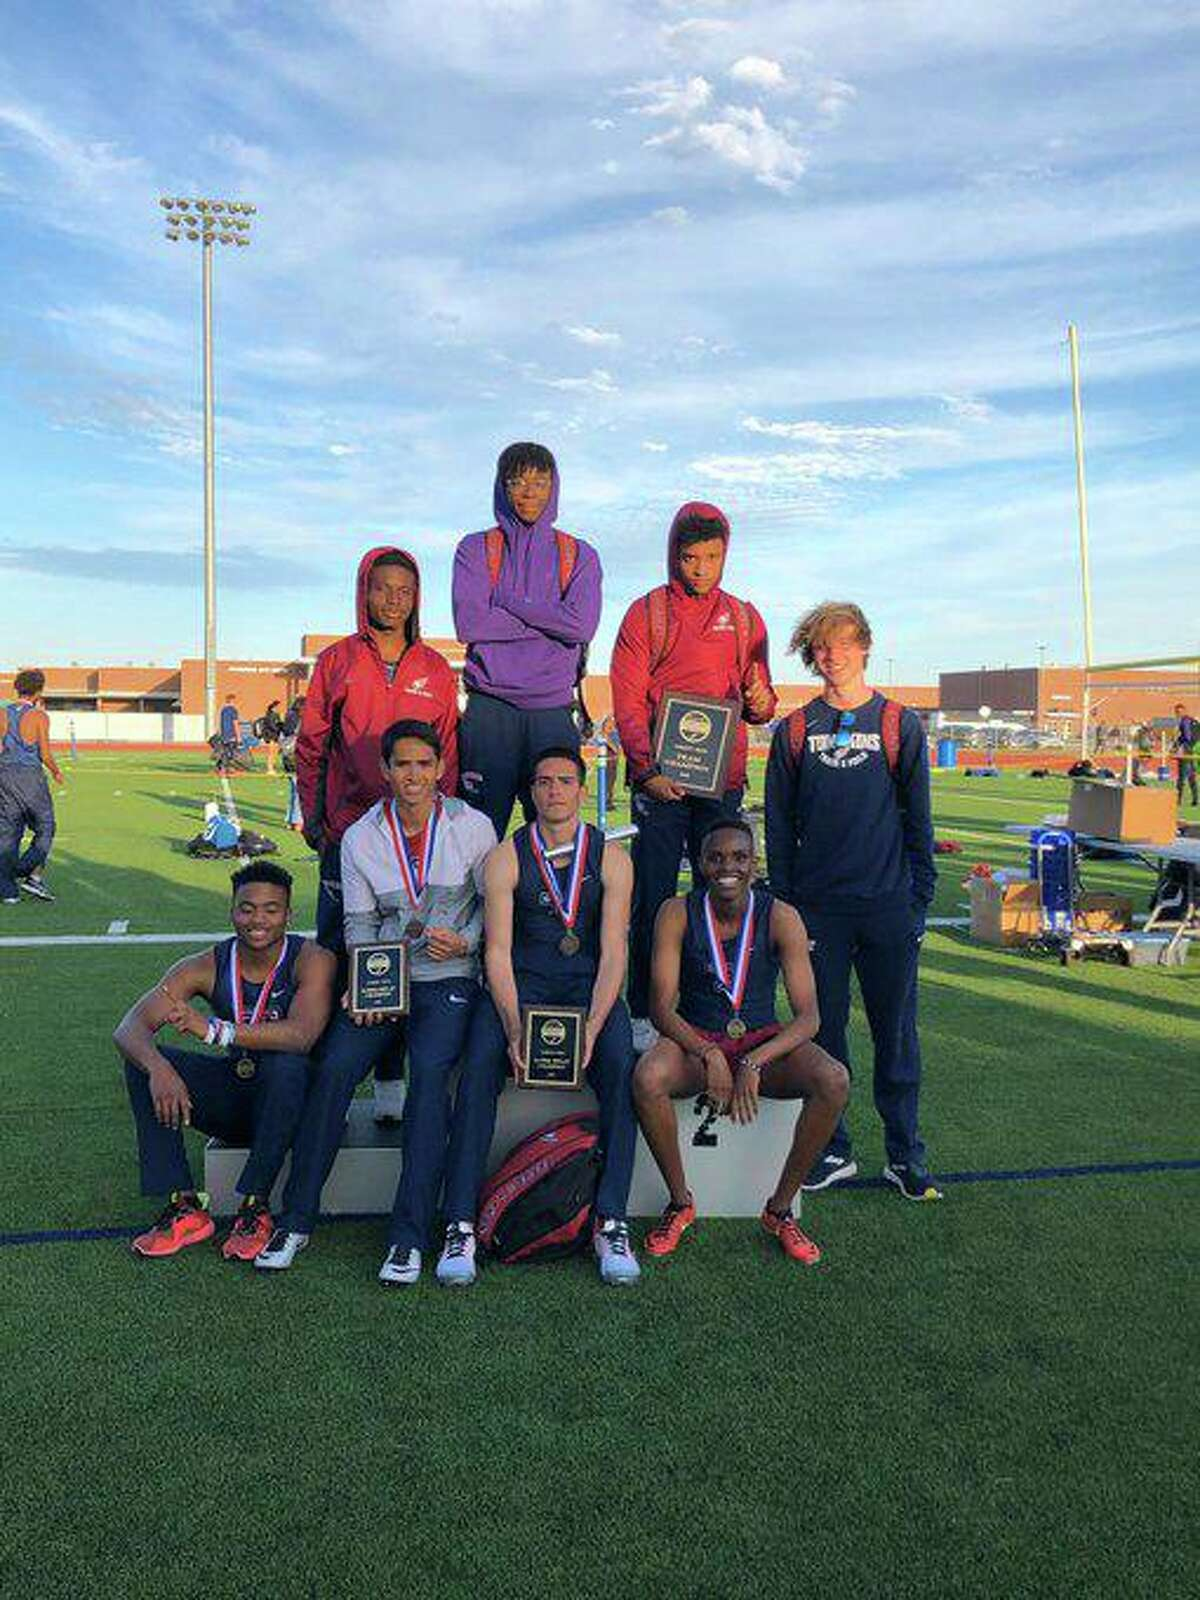 The Tompkins boys track and field team won the Bubba Fife Relays championship, scoring 110 points to outpaceStrake Jesuit (68) and Ridge Point (60).